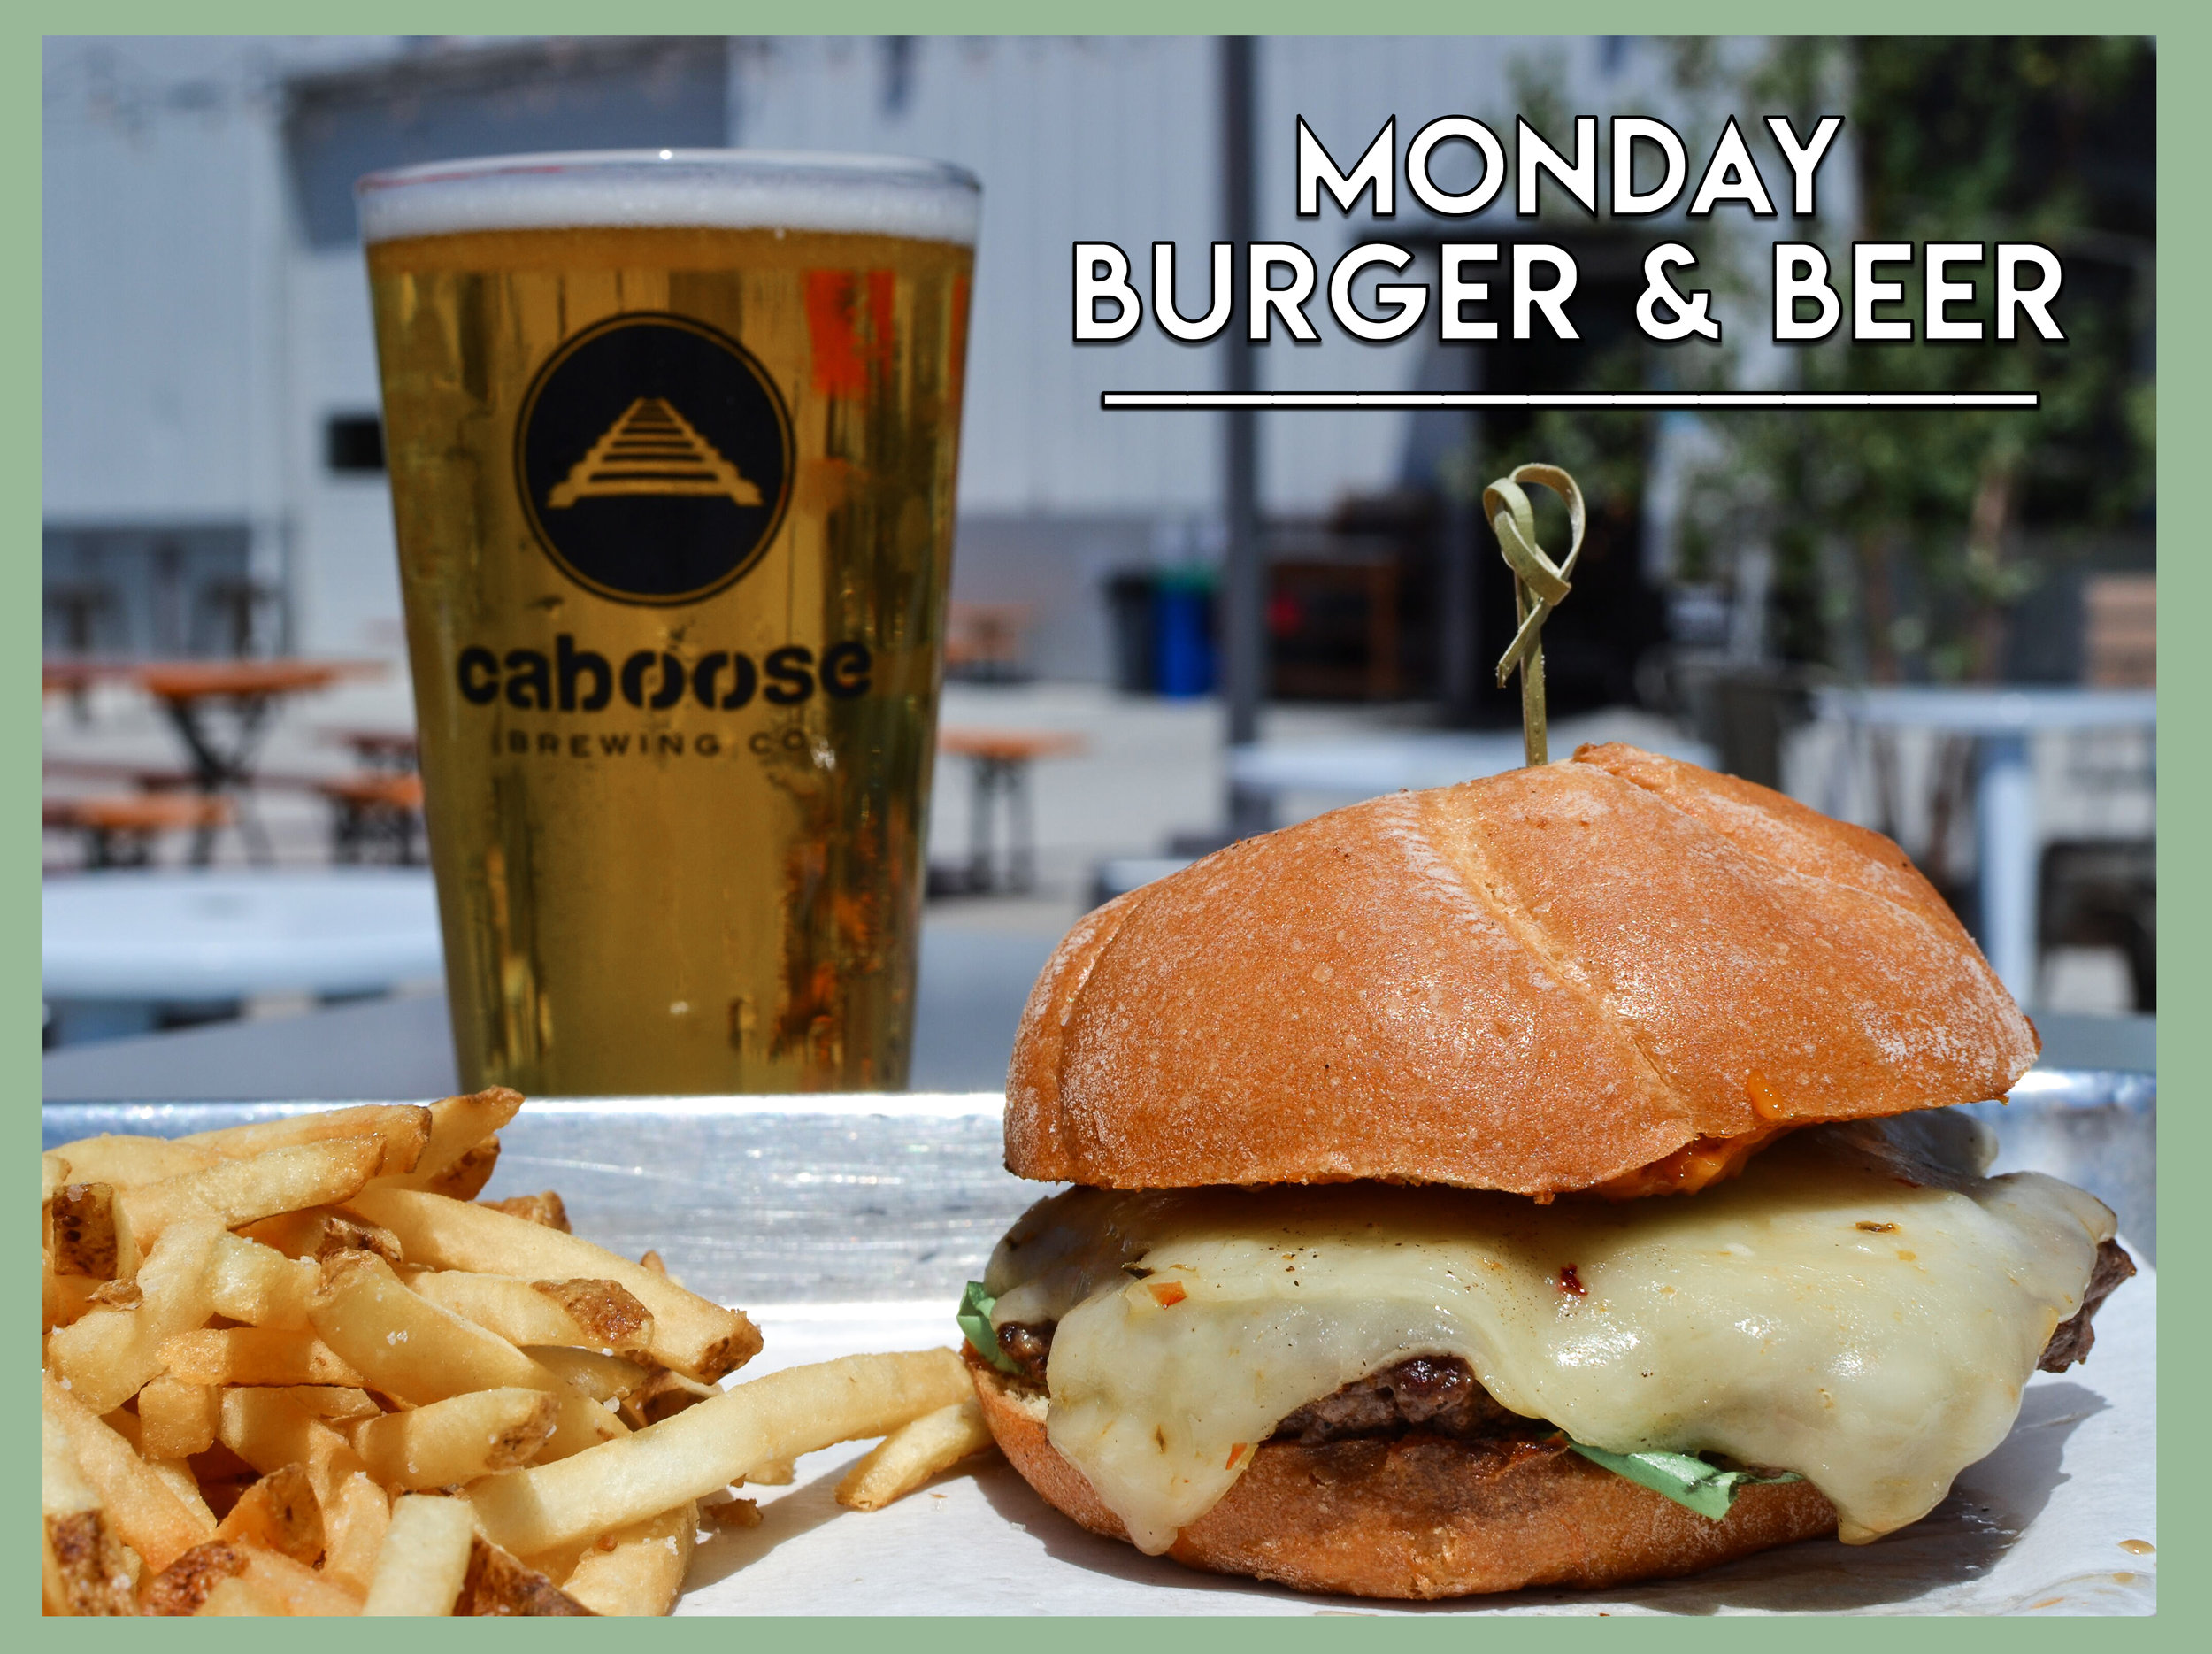 monday burger and beer.jpg